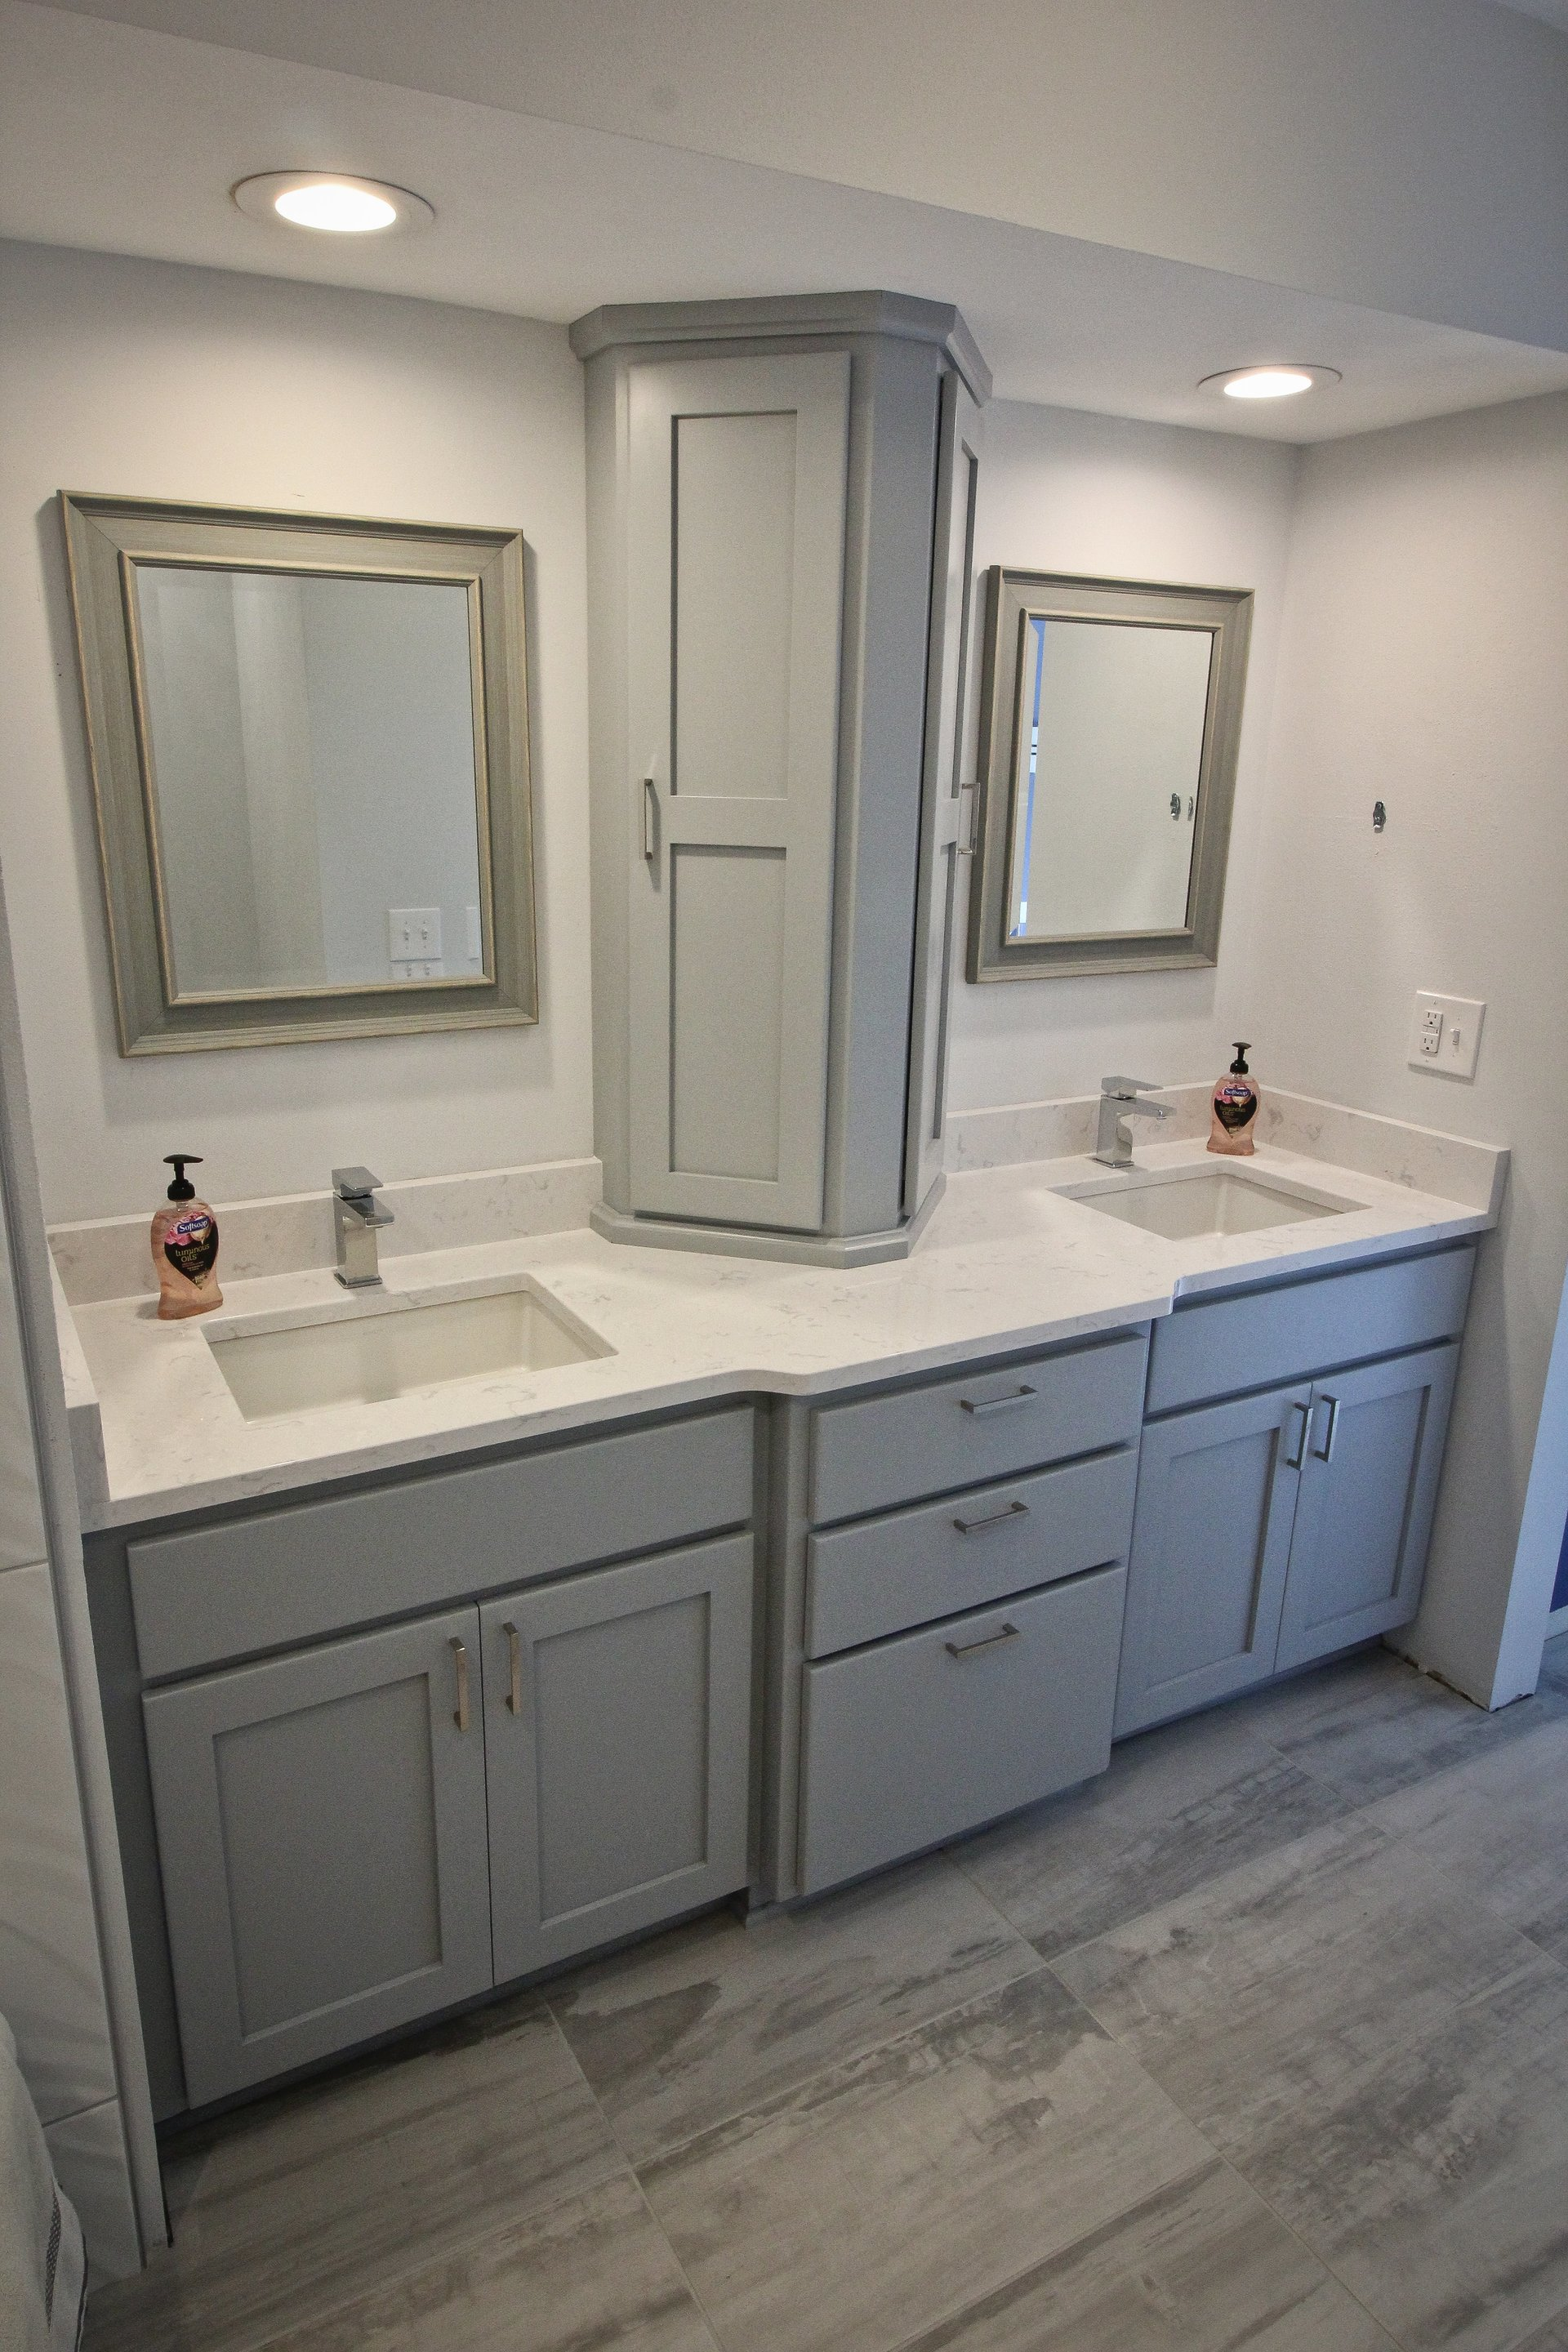 decoration cabinets bathroom designs guide